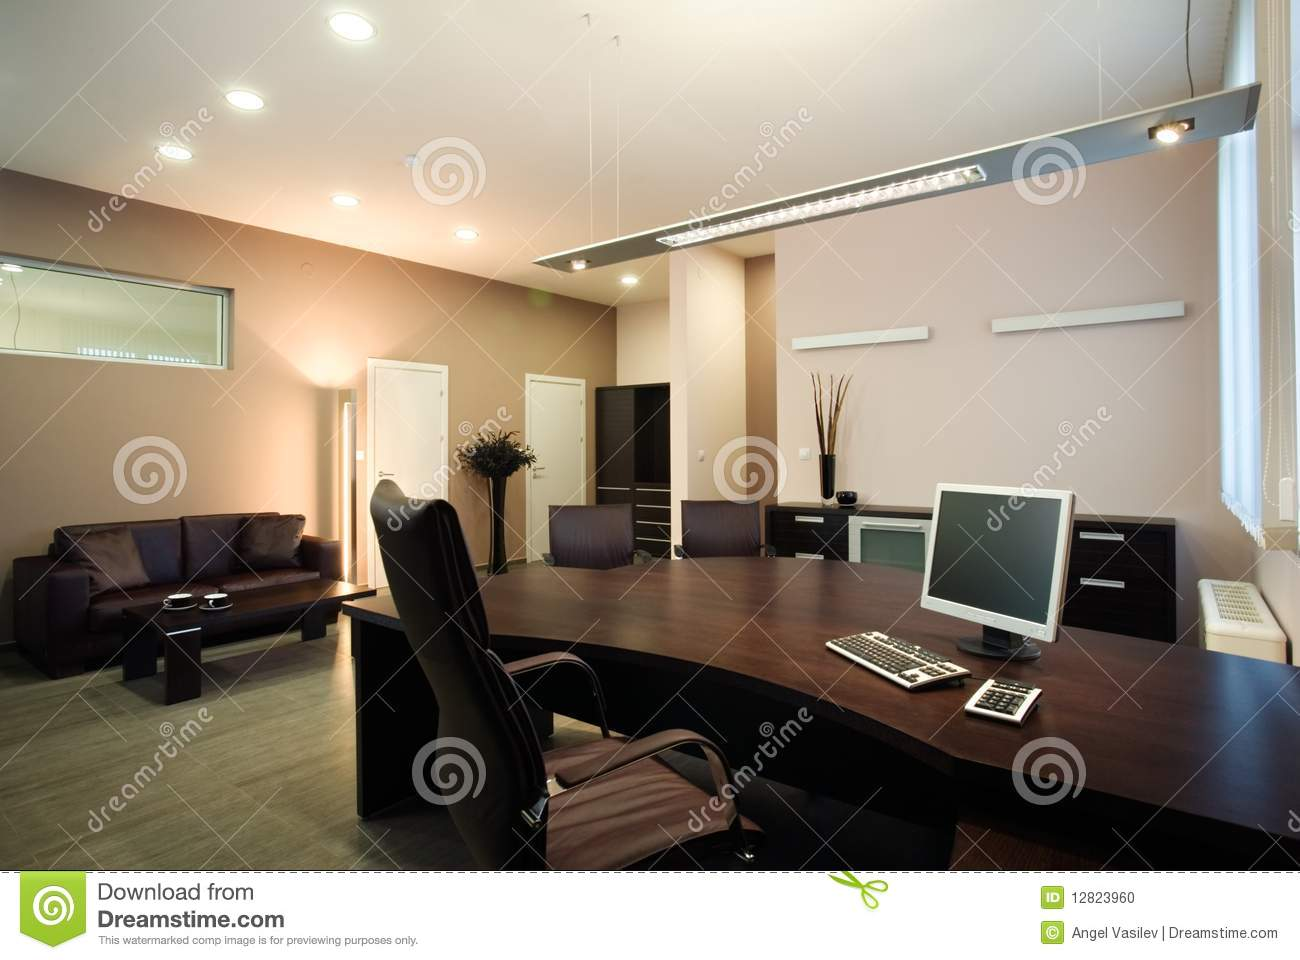 Elegant and luxury office interior design stock photo for Elegant interior design